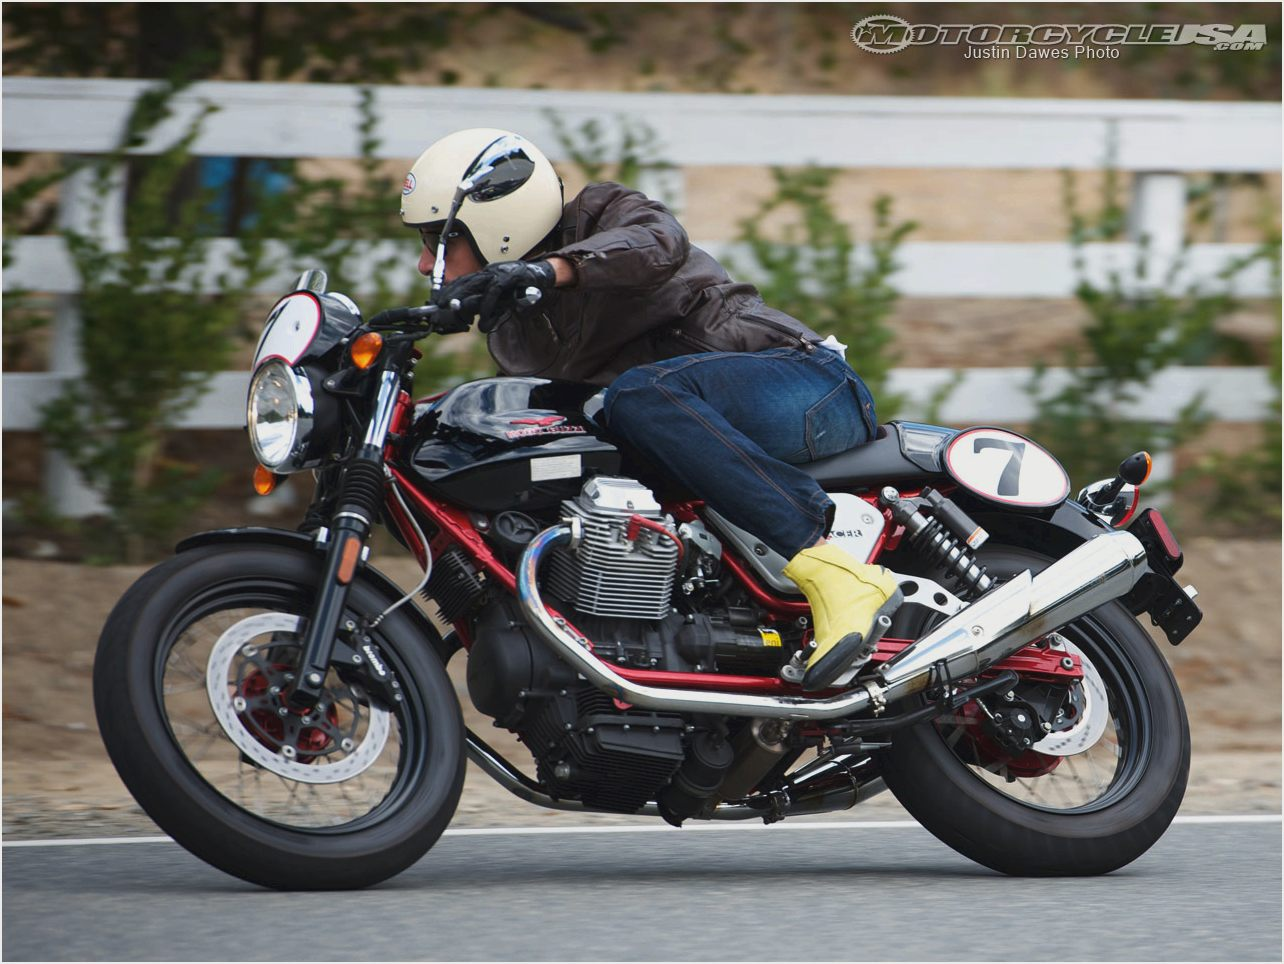 Moto Guzzi V7 Racer Limited Edition 2011 images #109582